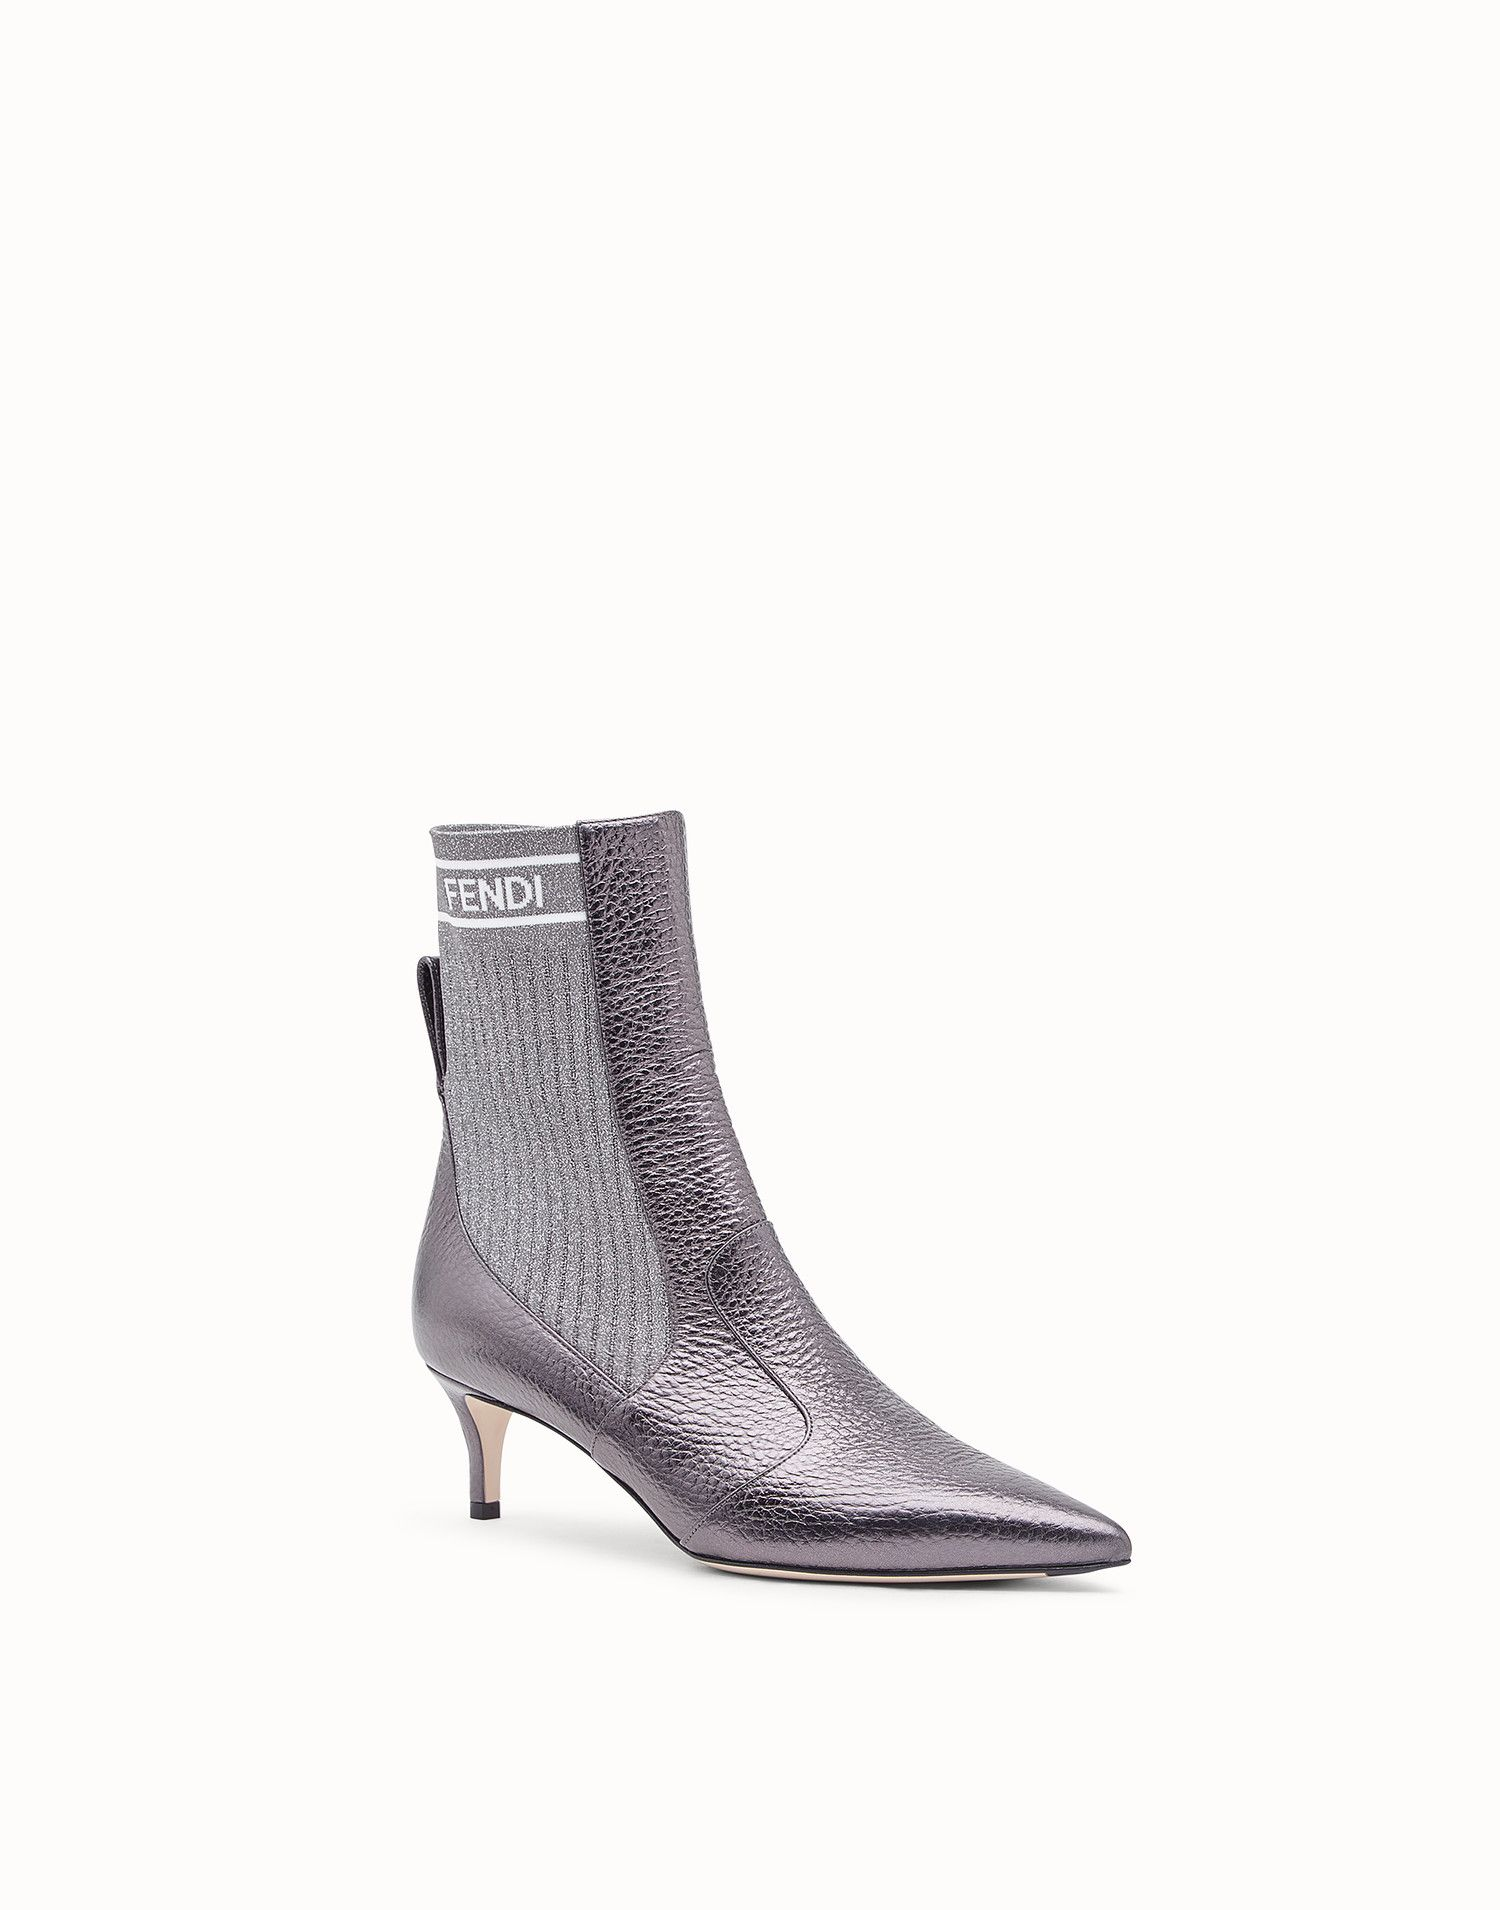 a0bb71aed22d FENDI BOOTS - Gray leather boots - view 2 zoom